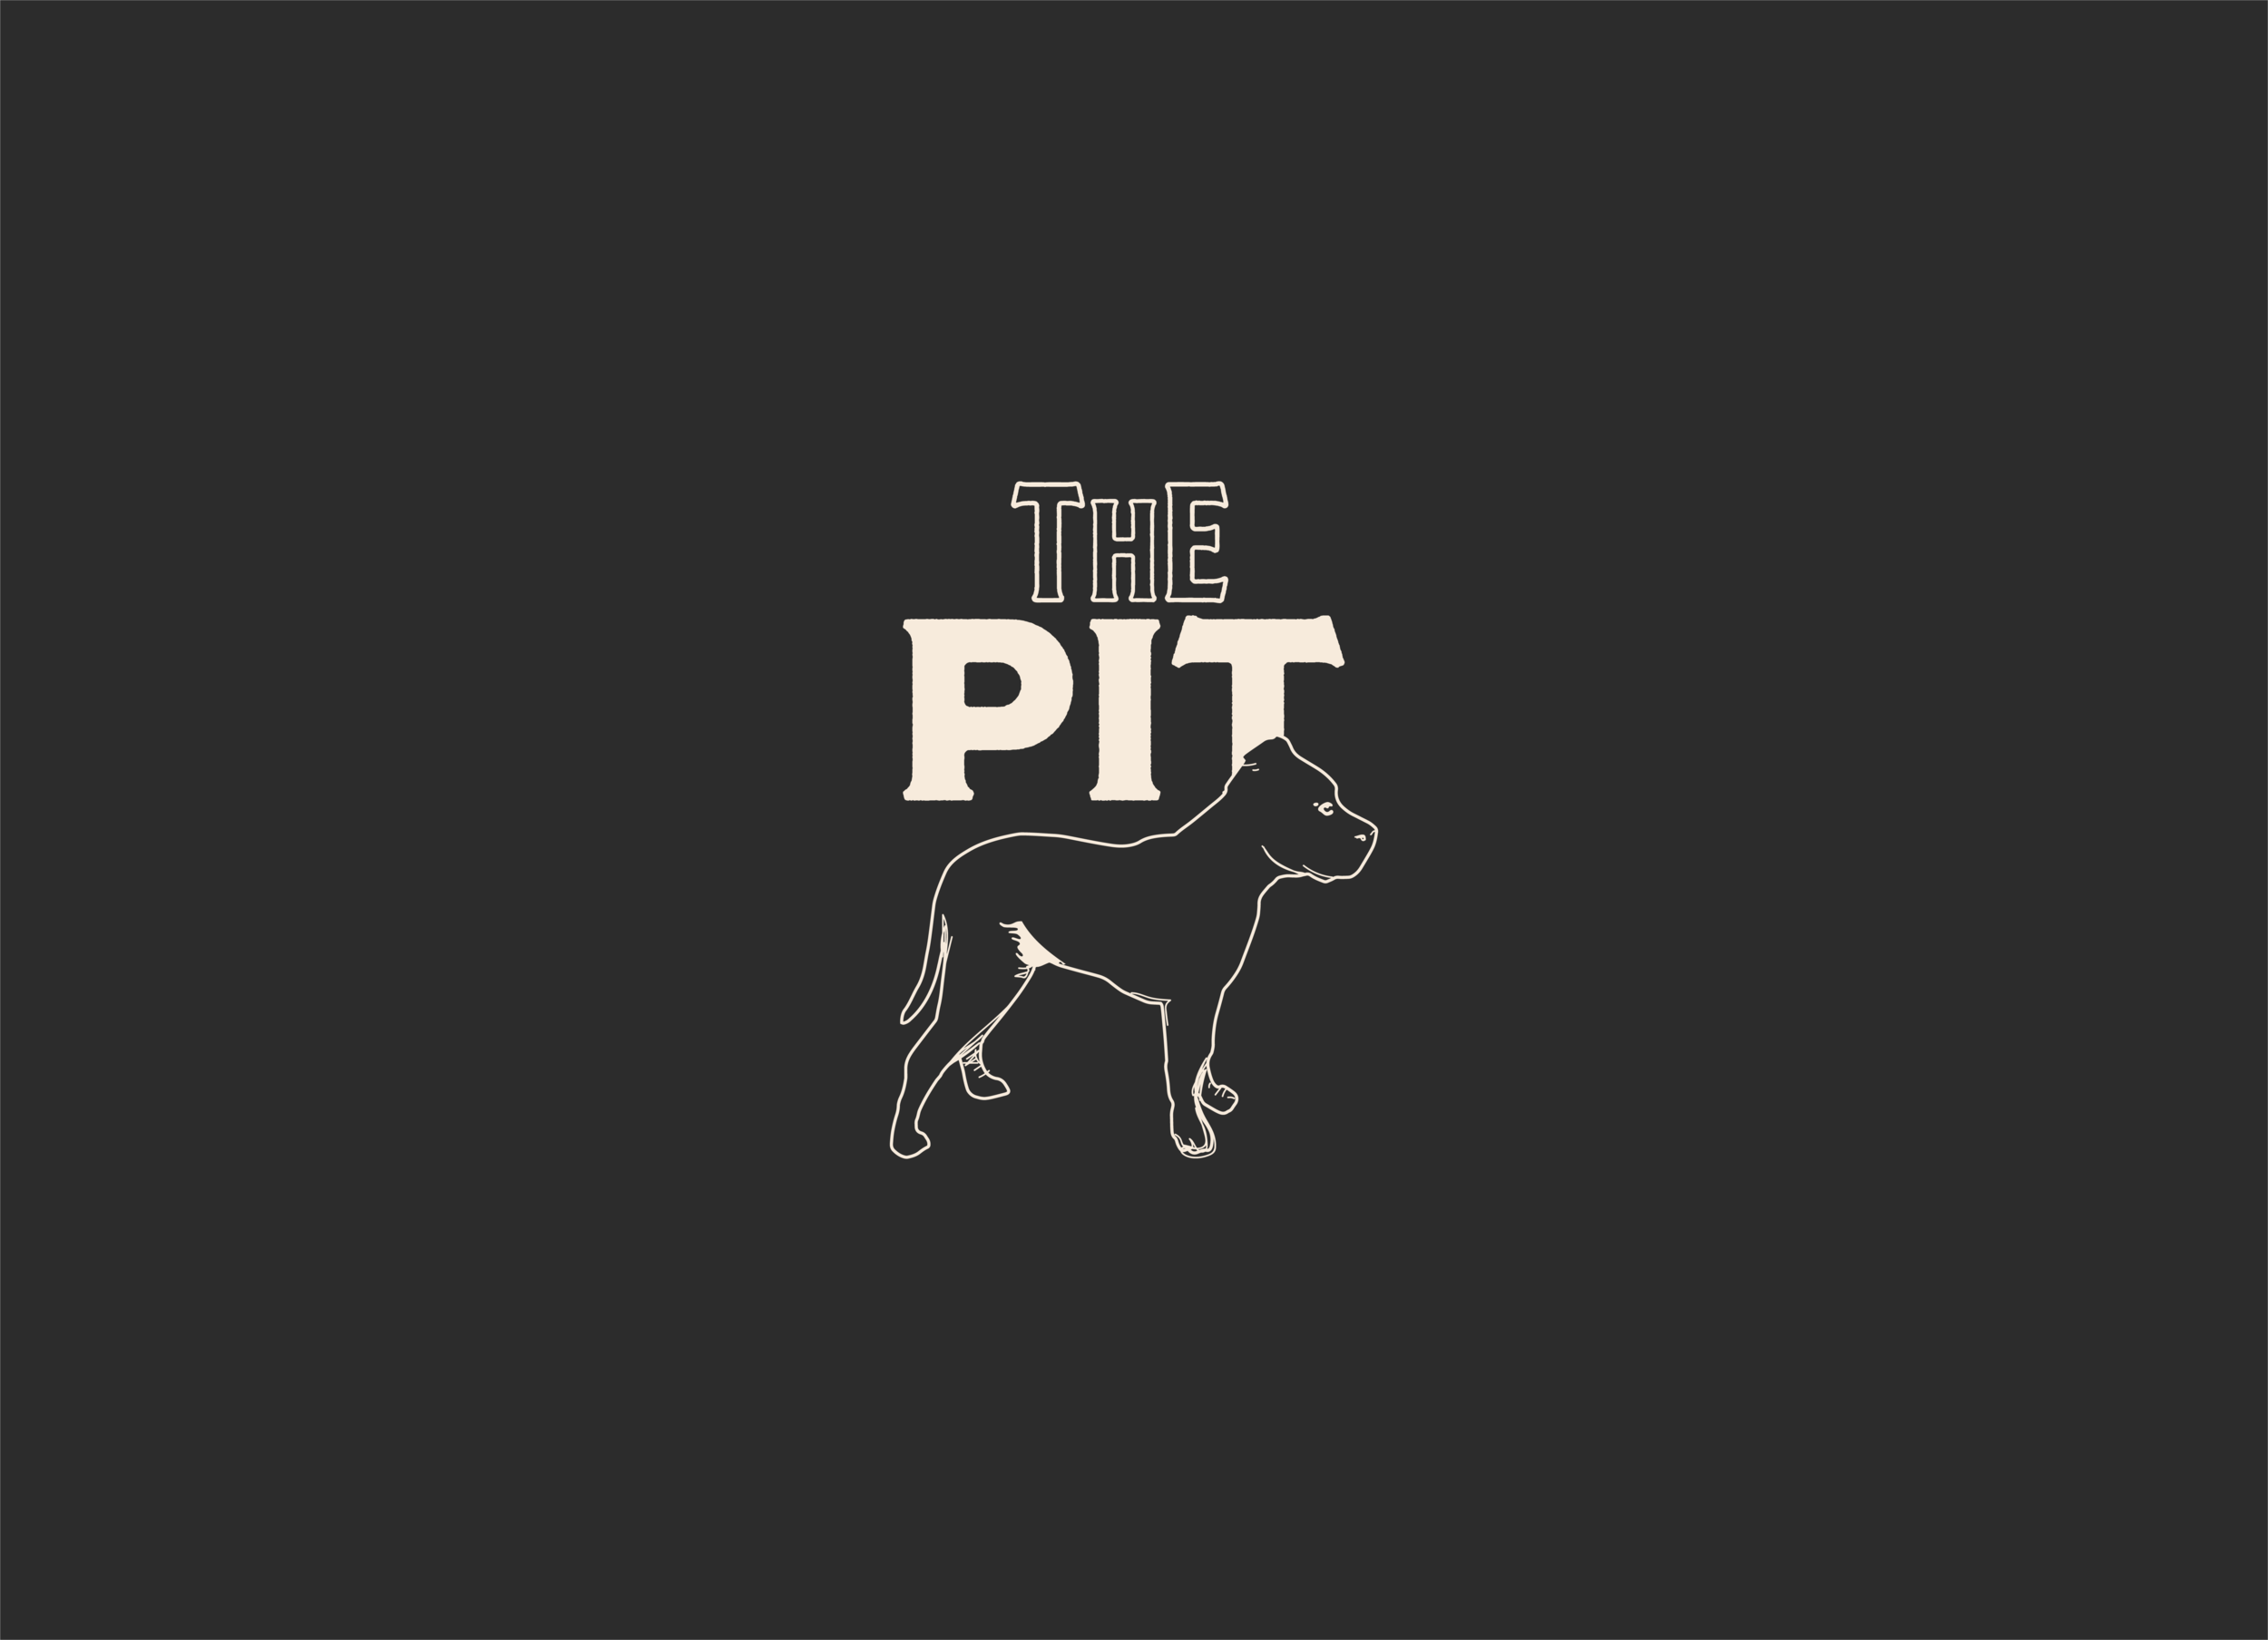 The_Pit_00a-02.png